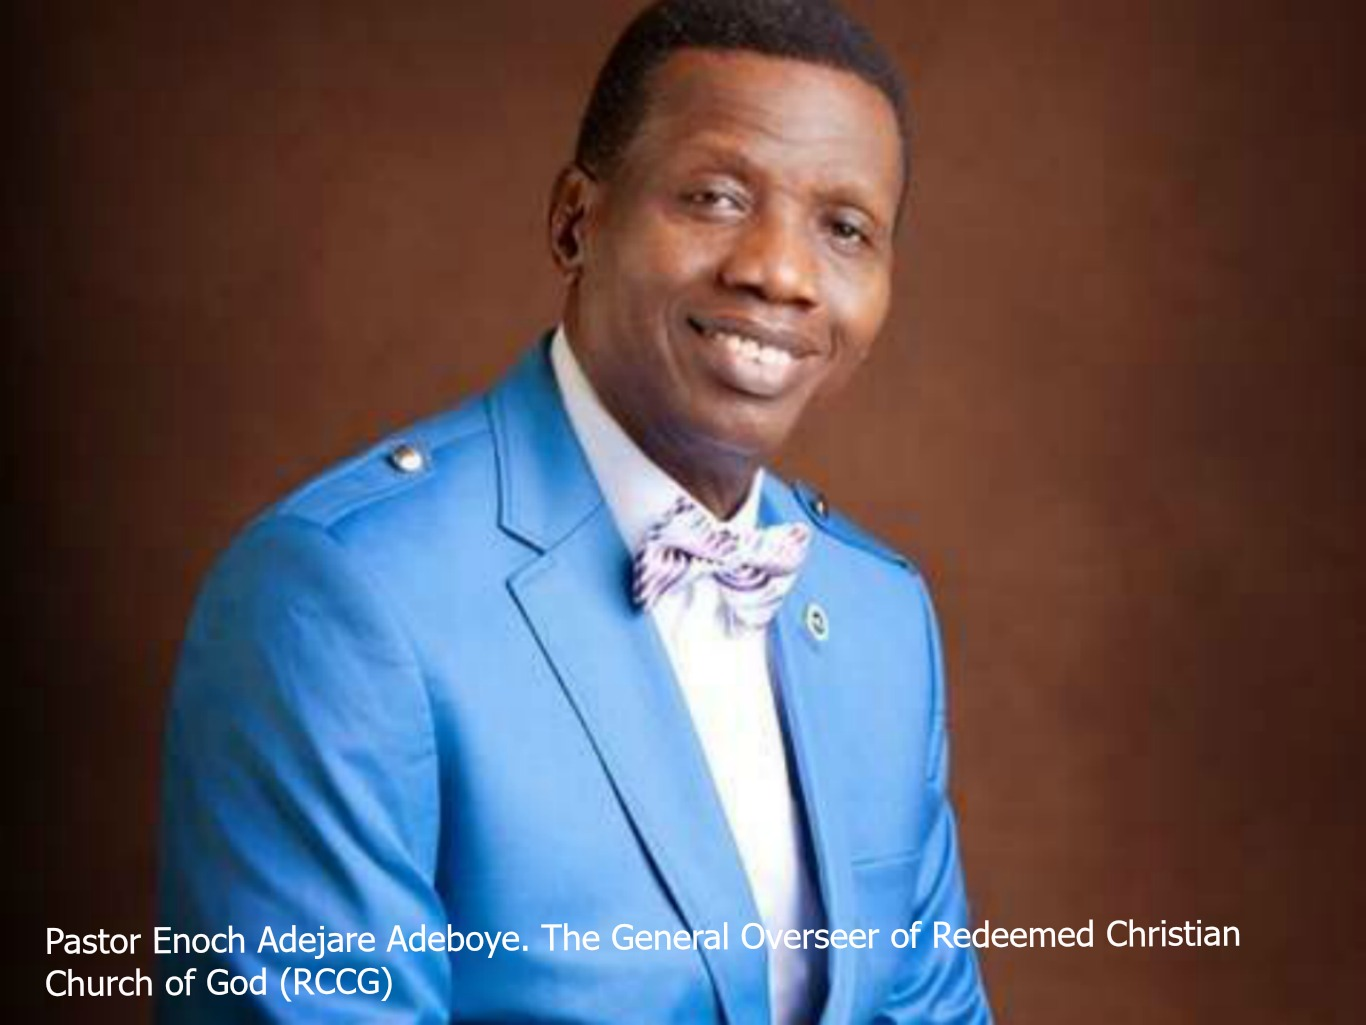 Pastor Enoch Adejare Adeboye.The General Overseer of Redeemed Christian Church of God (RCCG)